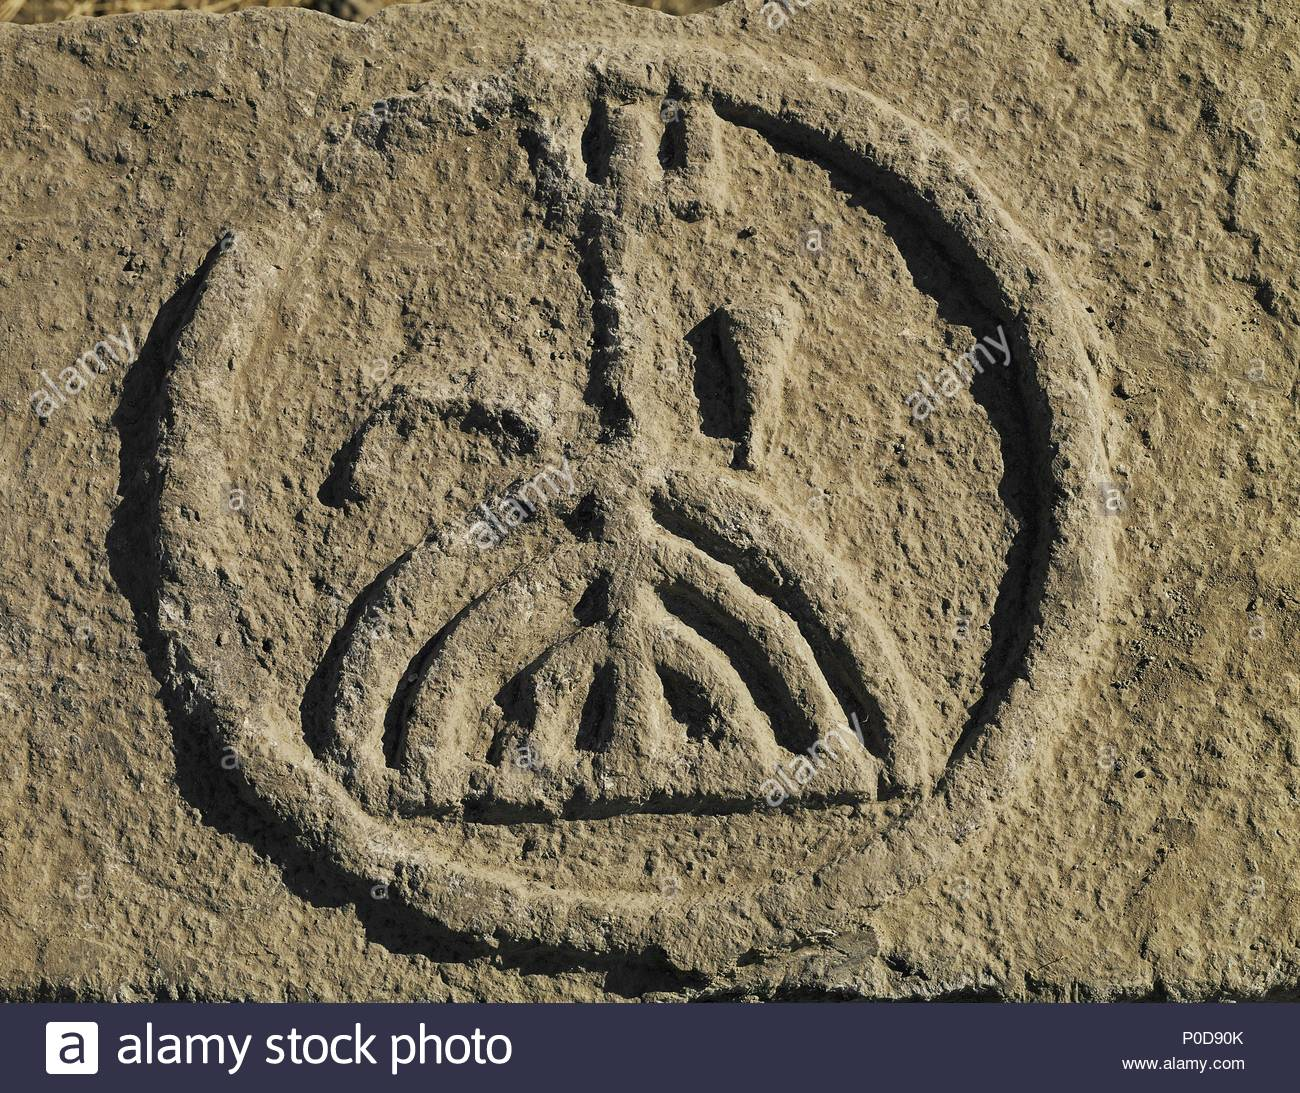 Menorah medallion in relief on a lintel from the ruins of the synagogue of Aphek, a village in the Golan Heights east of the Sea of Galilee, Israel. Location: Golan Museum, Kazrin, Israel. - Stock Image